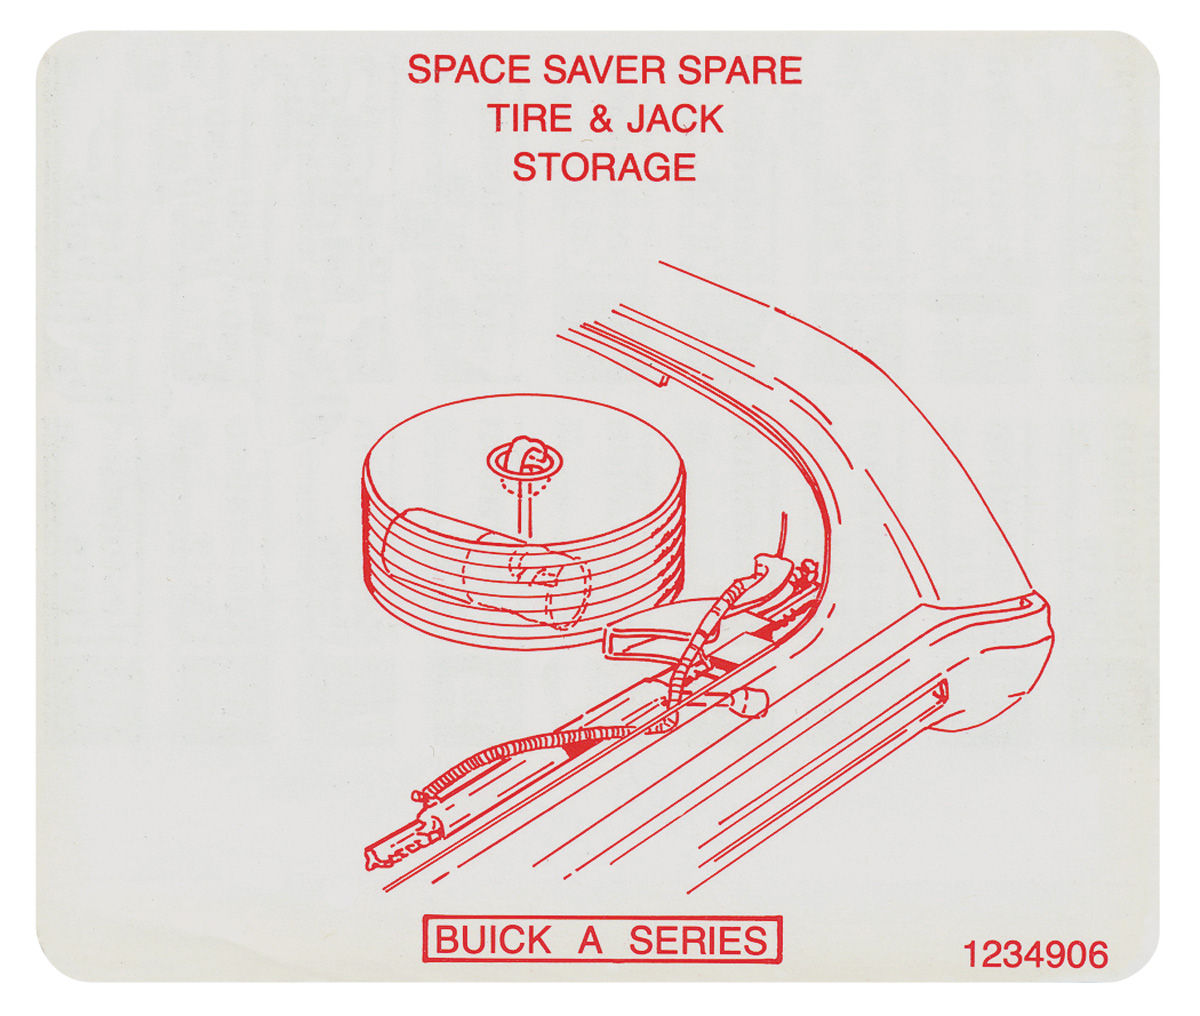 Photo of Jacking Instruction Decal space saver spare tire stowage (#1234906)